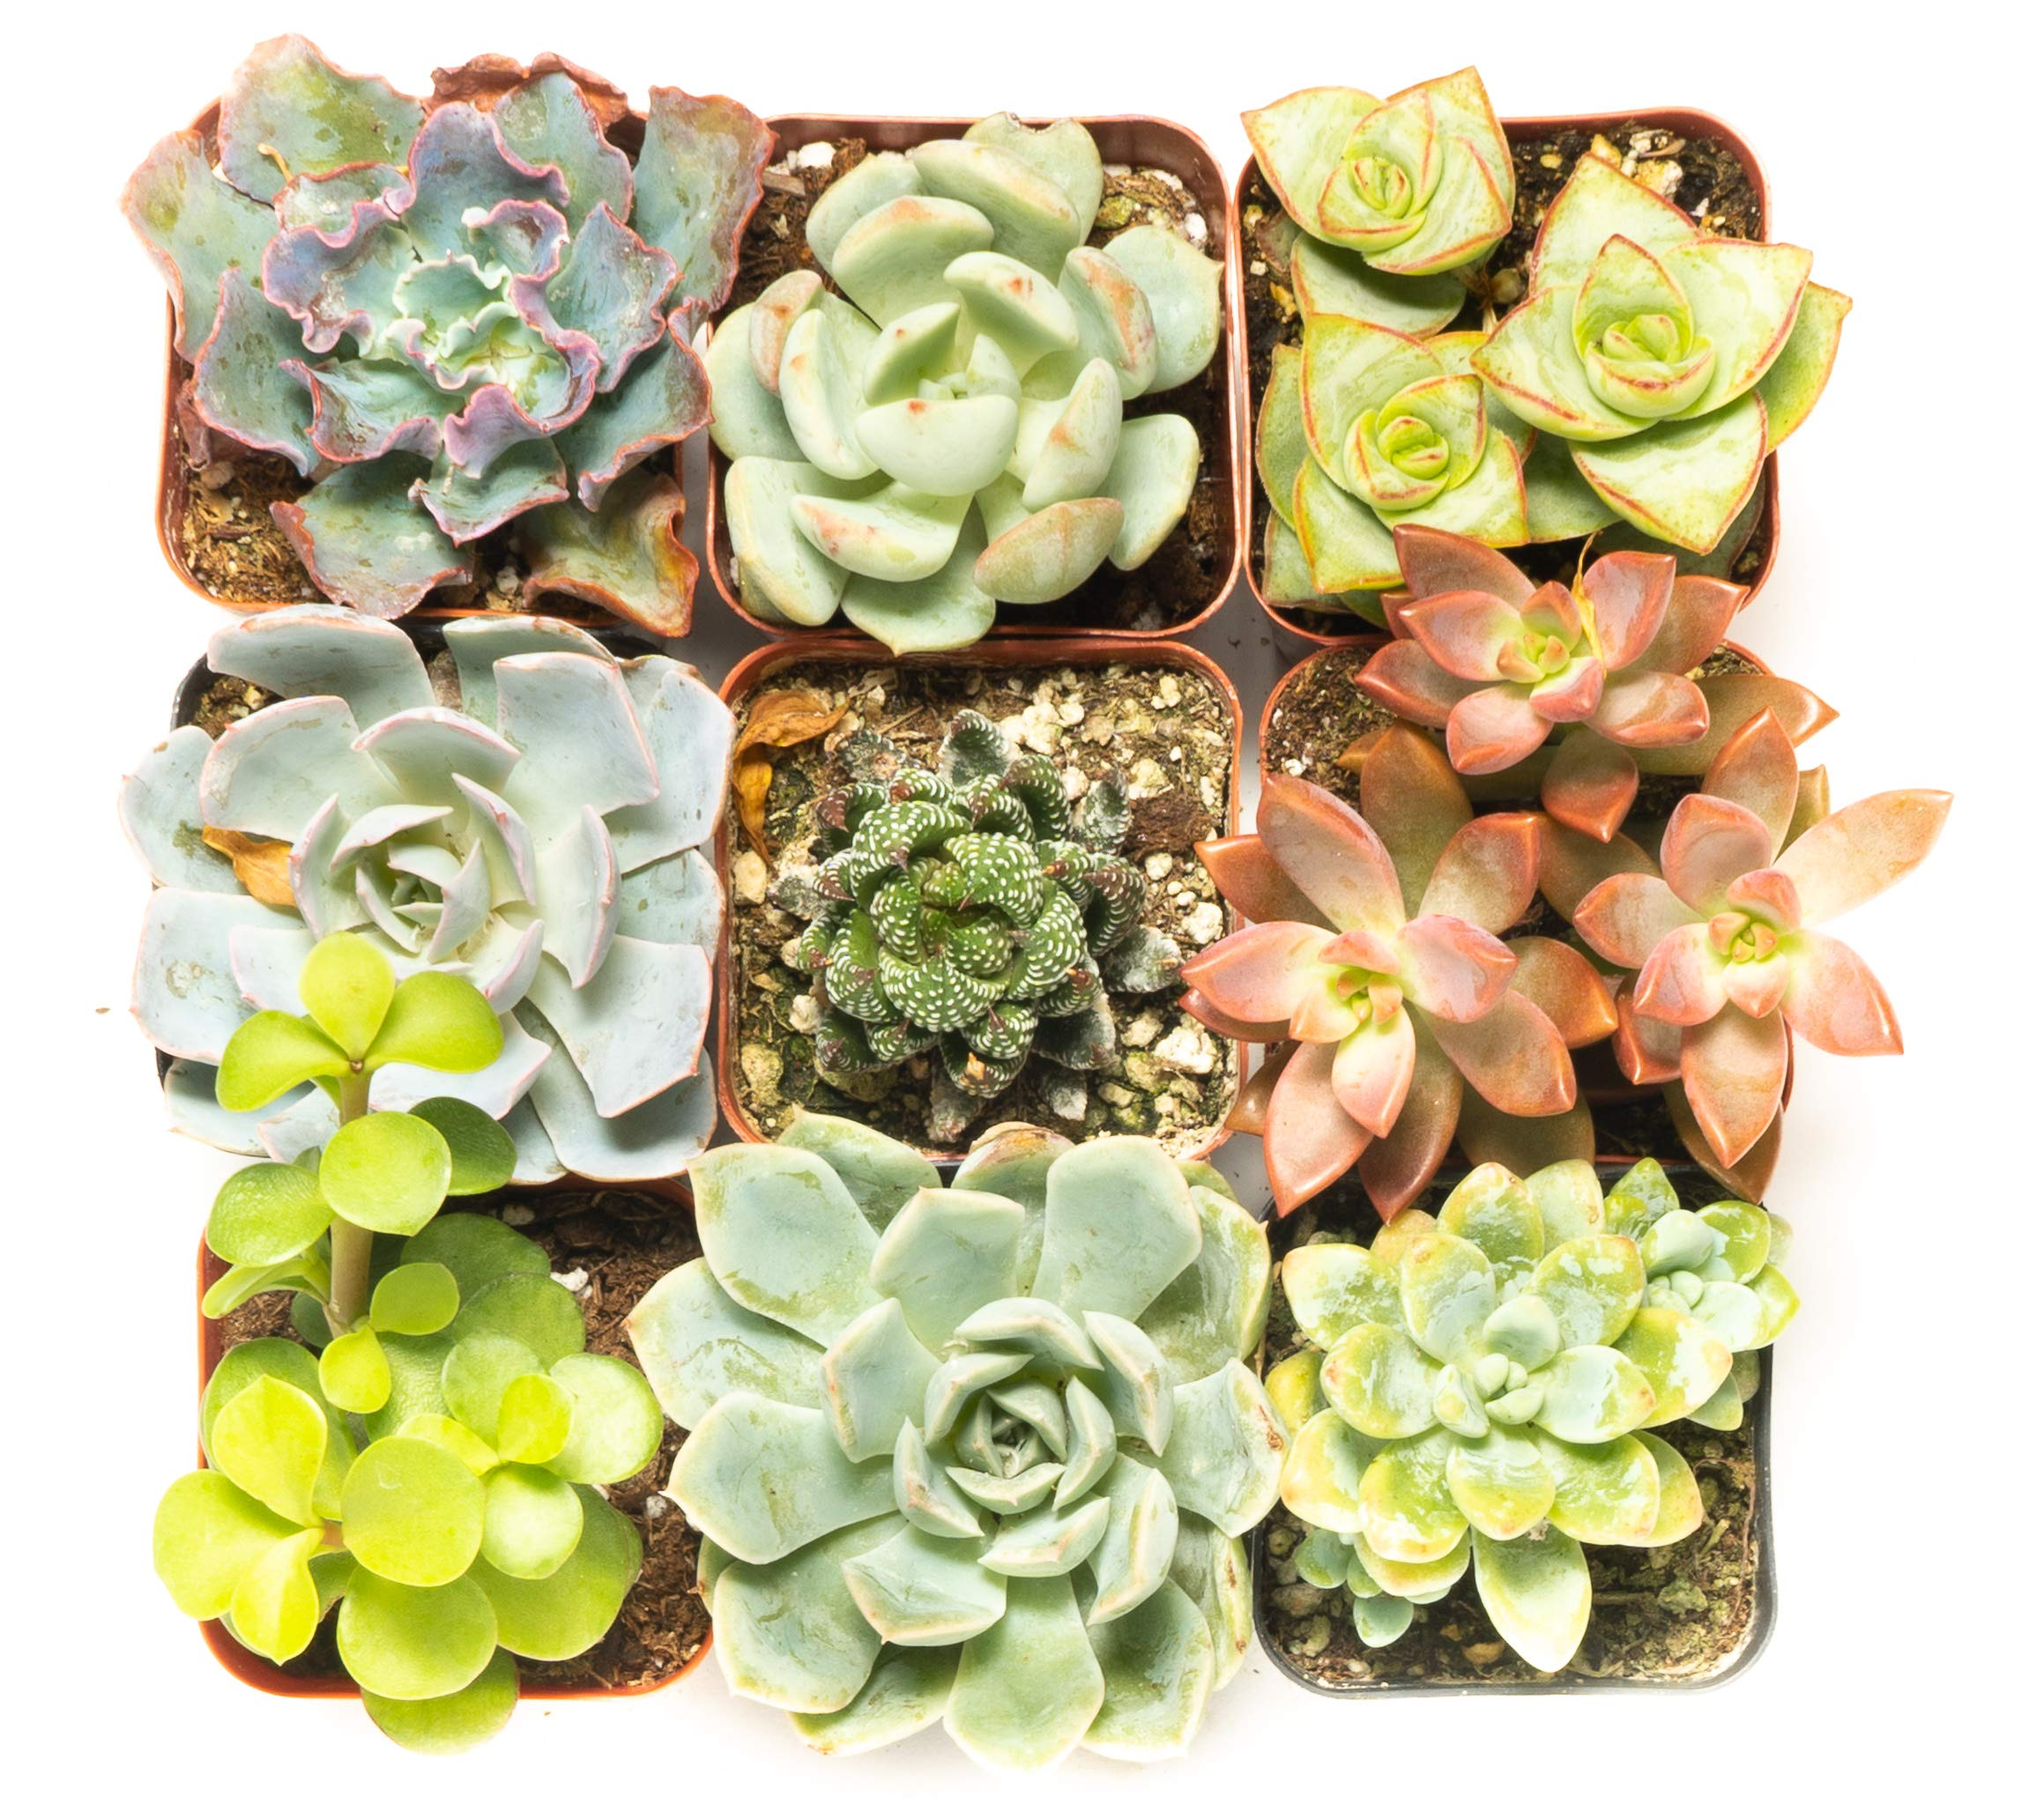 Succulent Assorted Pack- Perfect for Weddings, Party Favors, Home Gardens, and Social Events by Jiimz (9 Pack)